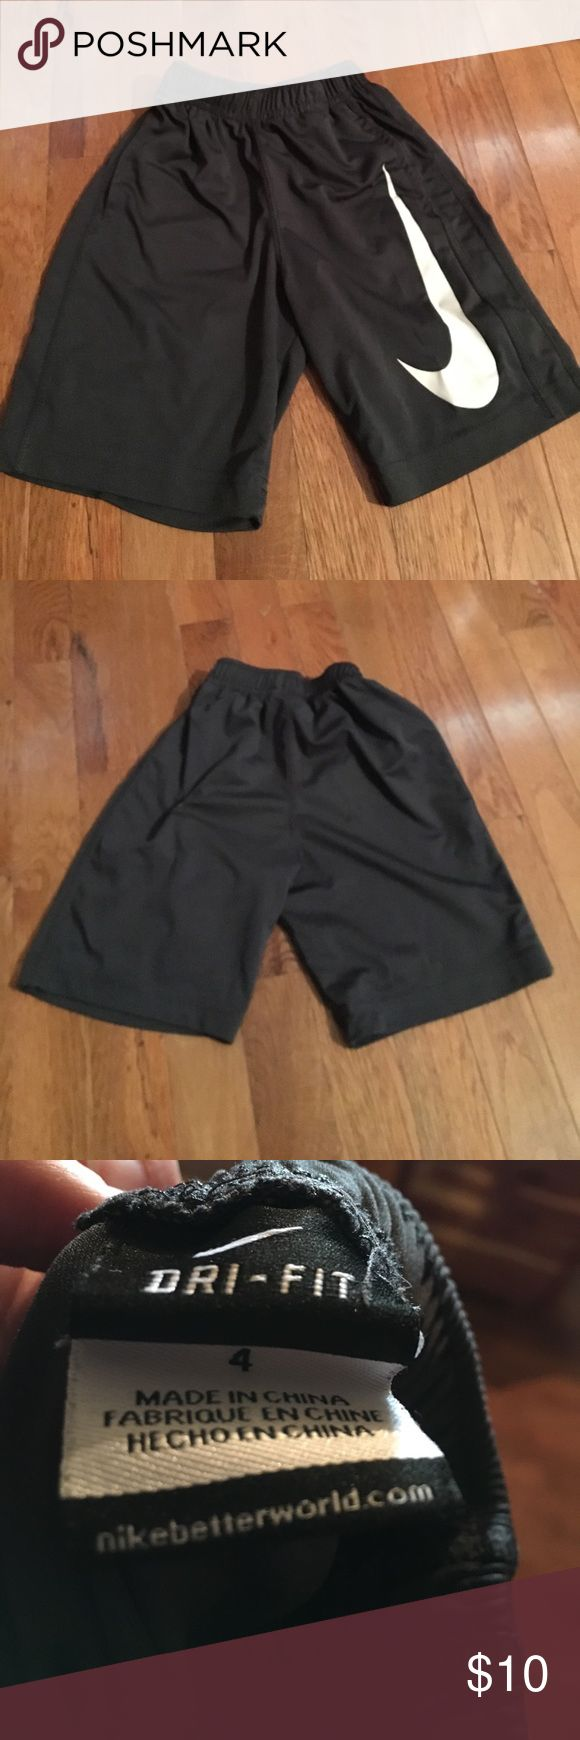 Boys Nike shorts size 4 Boys Nike shorts size 4. There is a small spot on the back of these. I don't have it shown in the photos. Otherwise, good condition. Nike Bottoms Shorts